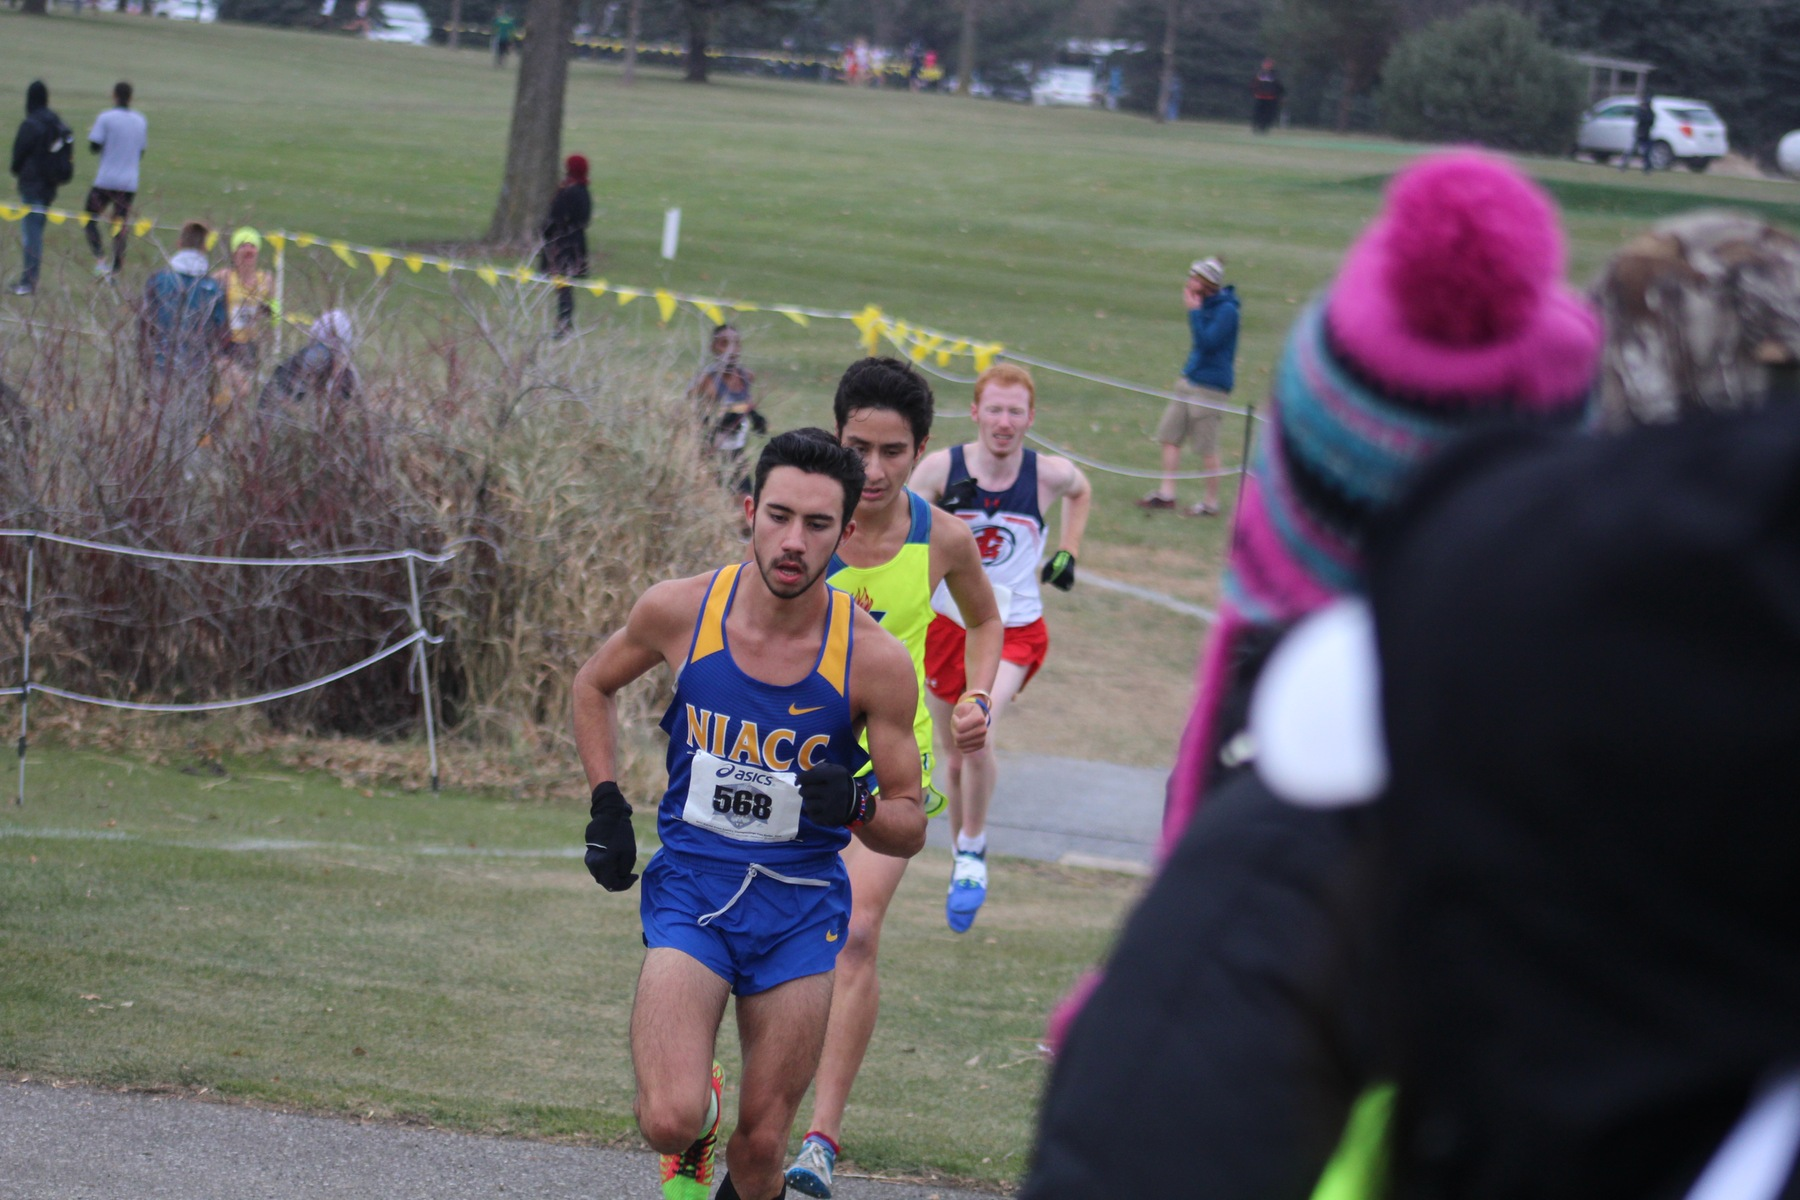 NIACC's Brian Jacques runs to a seventh-place finish at the NJCAA Division I national cross country meet Saturday in Fort Dodge.